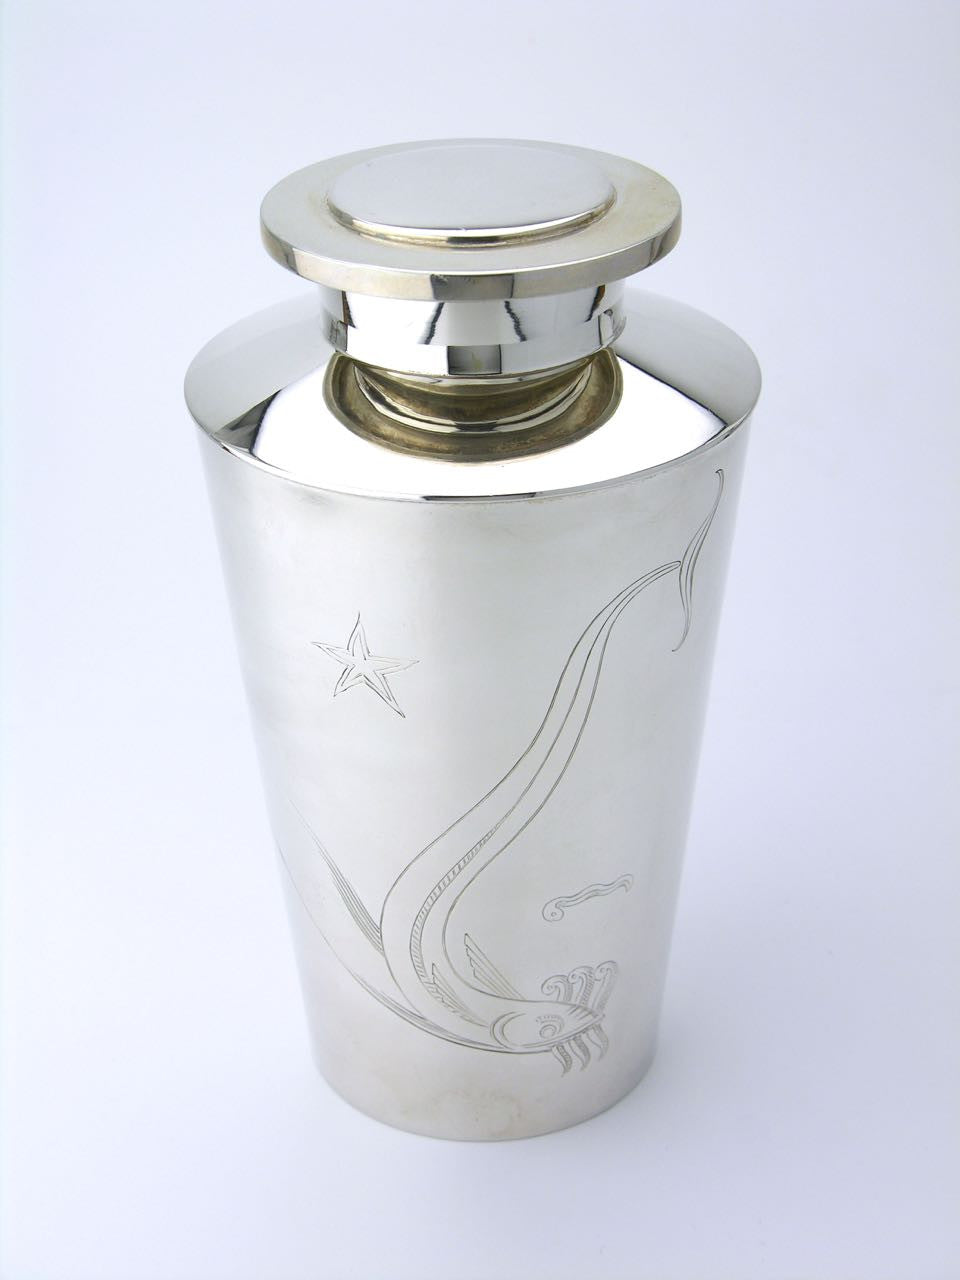 David Andersen solid silver cocktail shaker